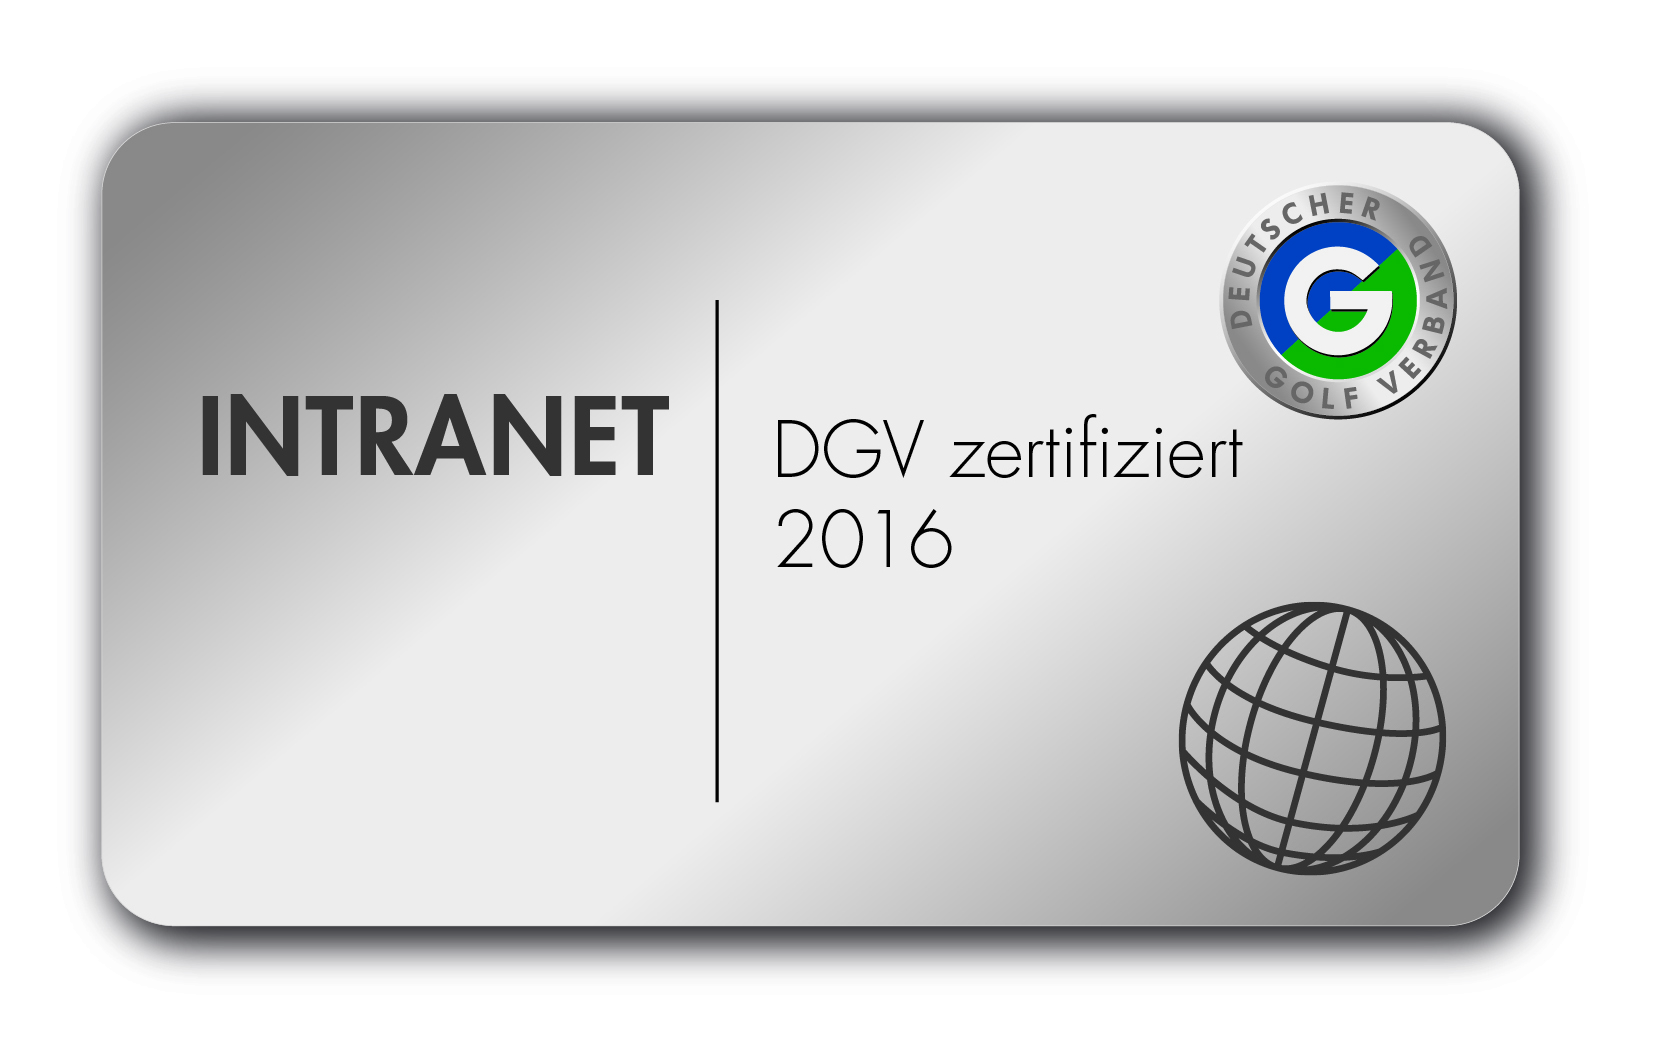 DGV_Intranet_2016_Q_mS